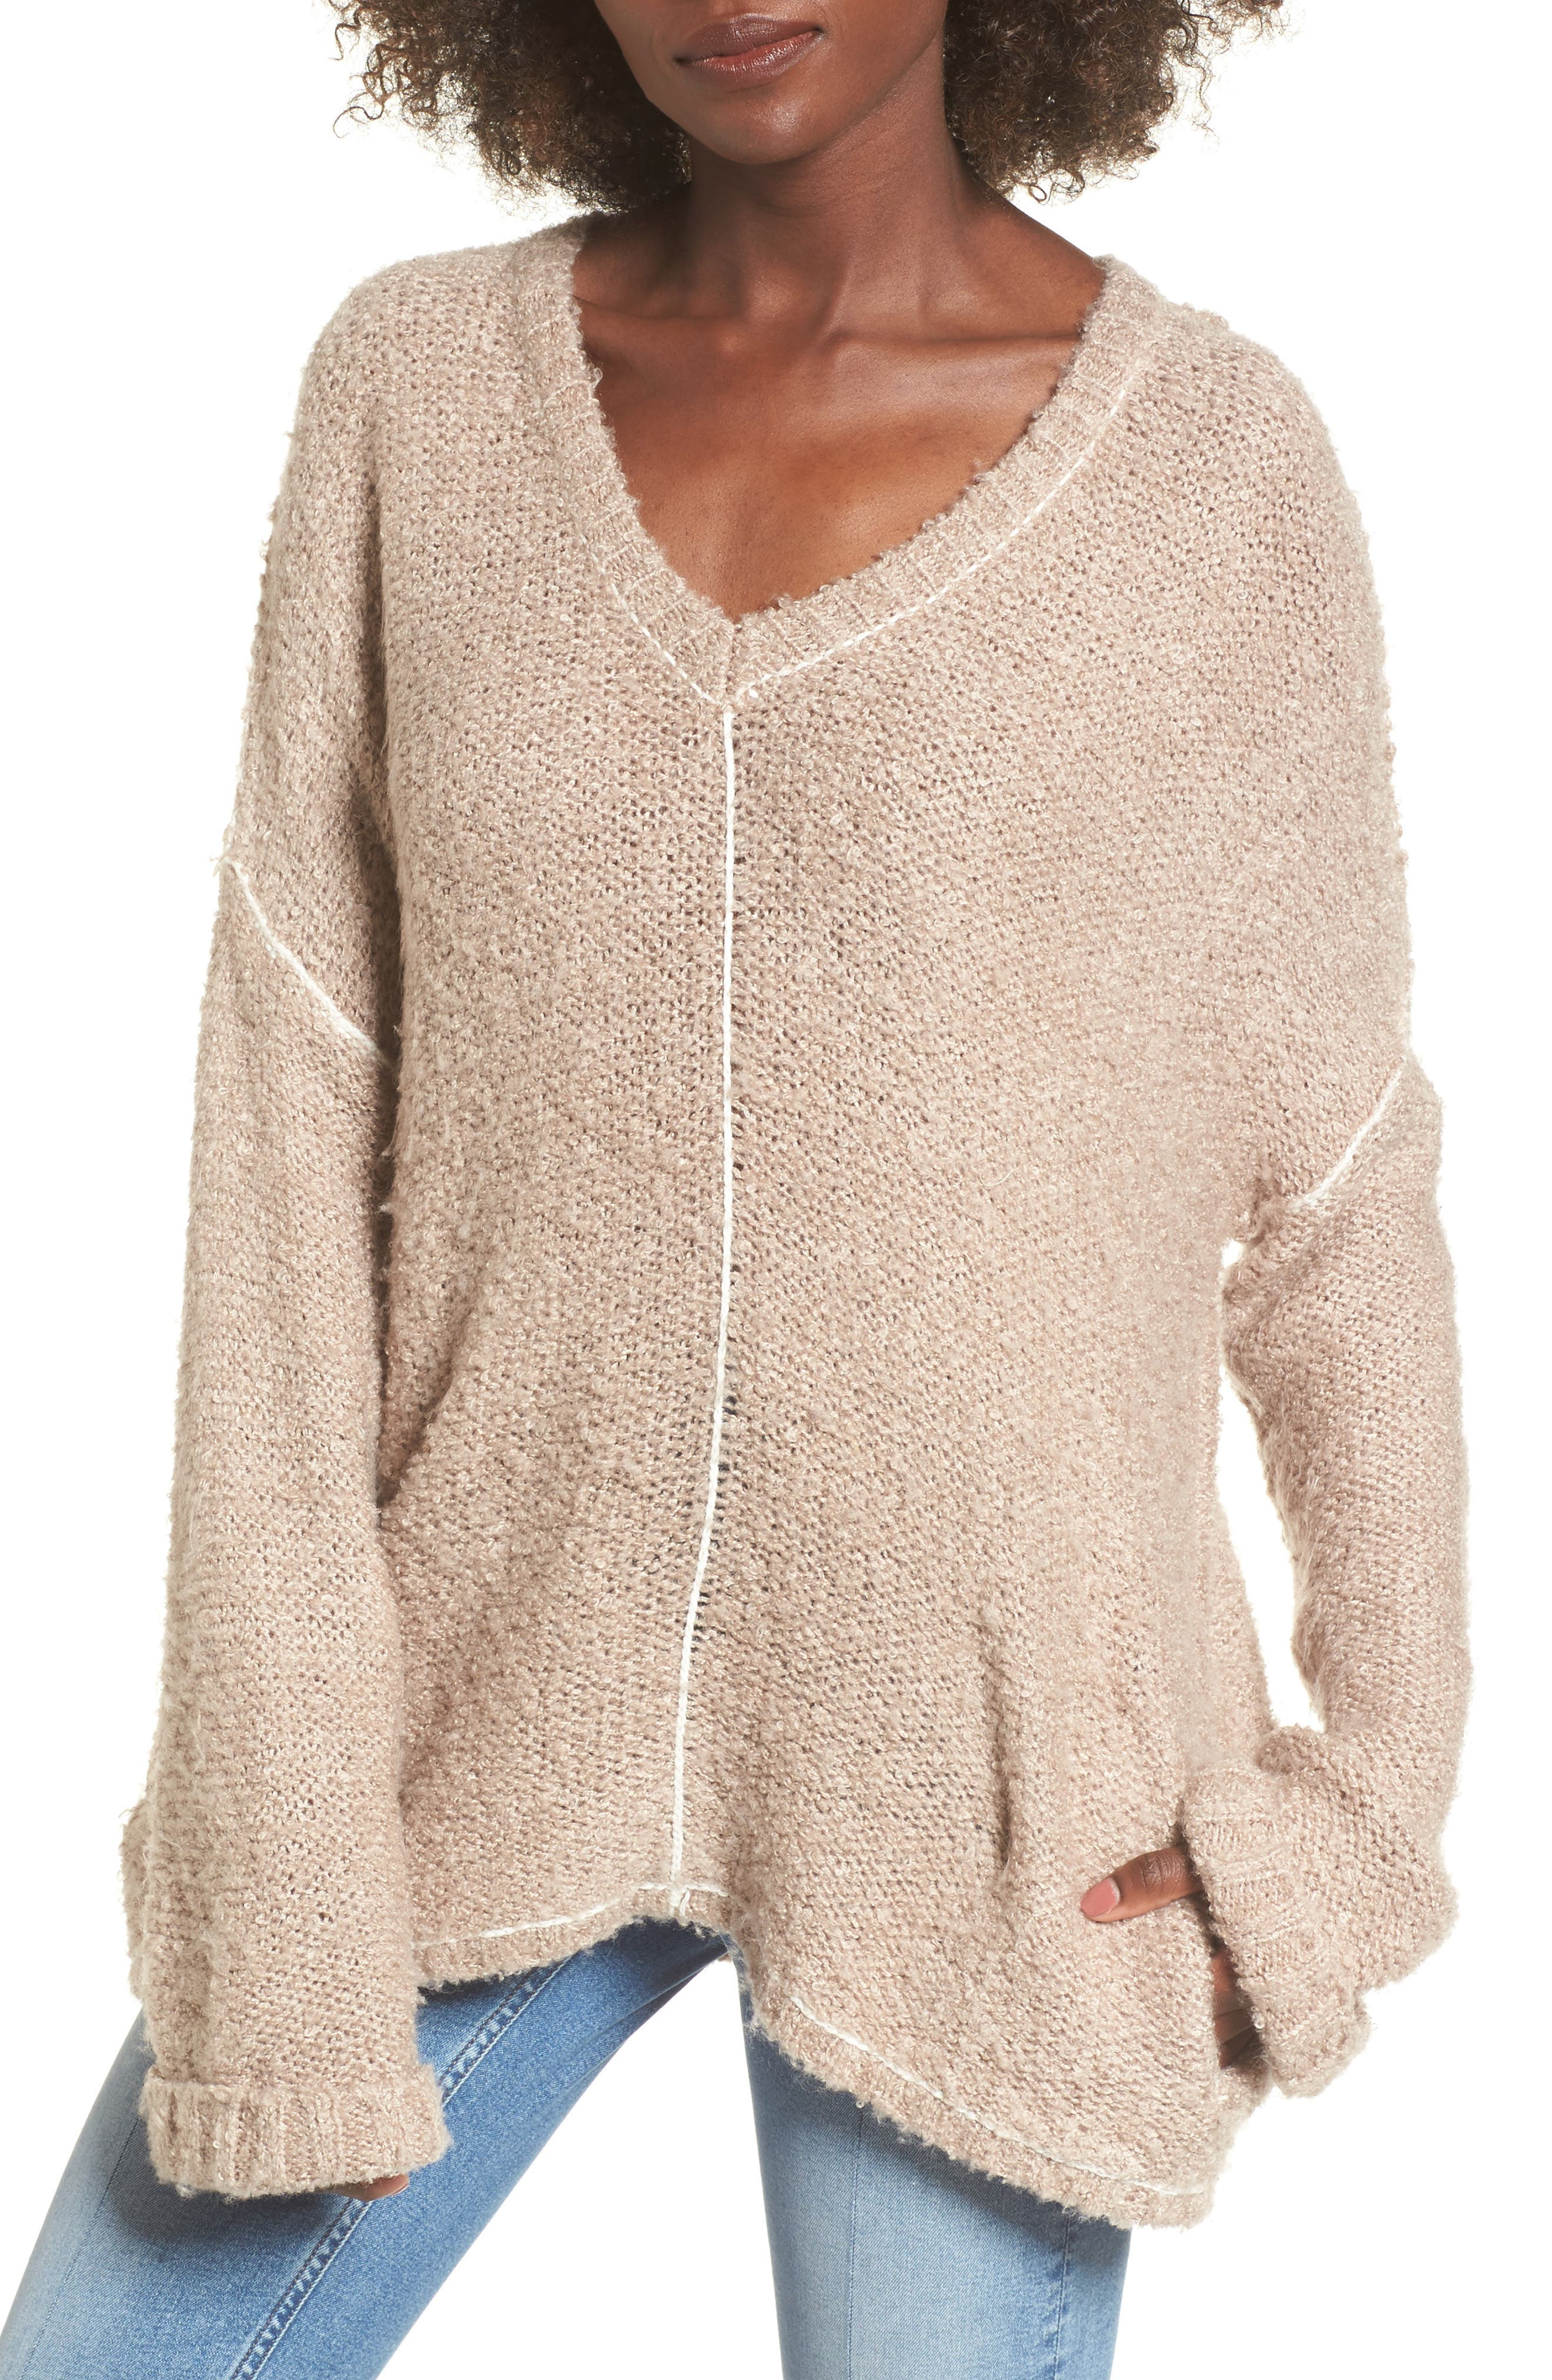 Voyage Knit Sweater,                         Main,                         color, 253